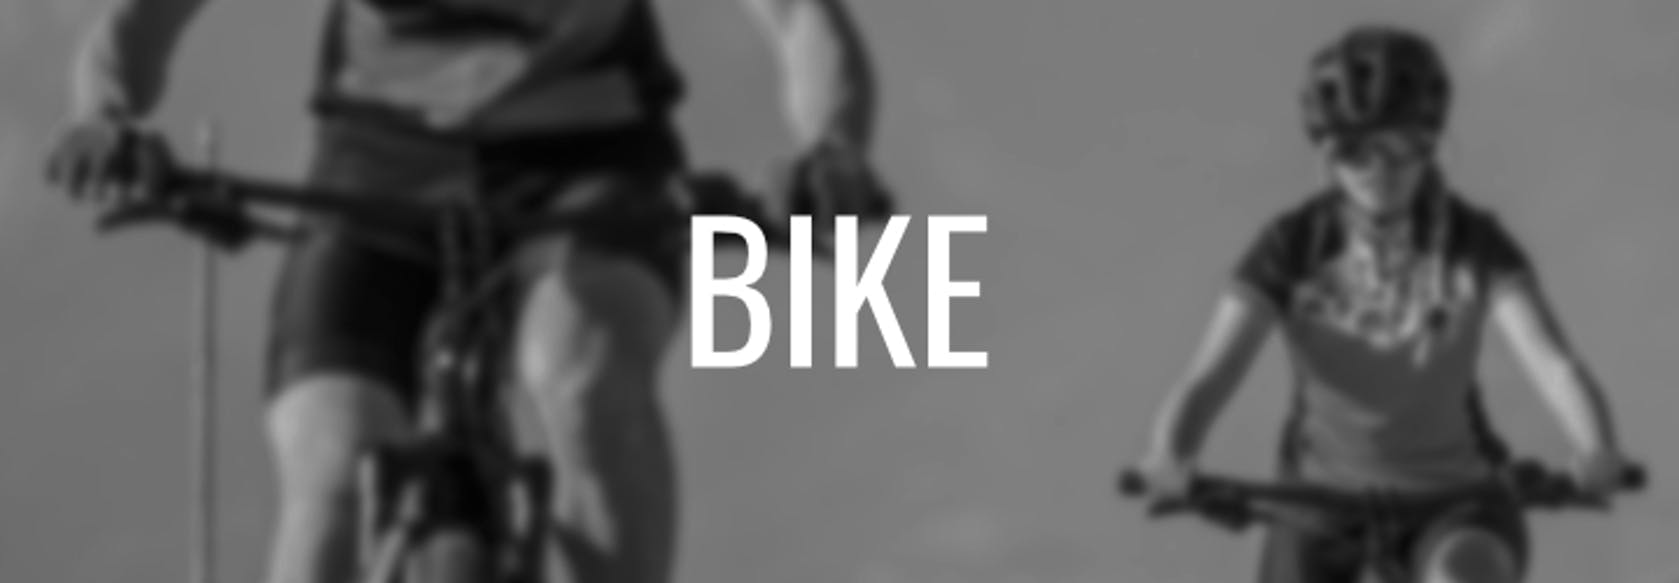 Bike Onlineshop